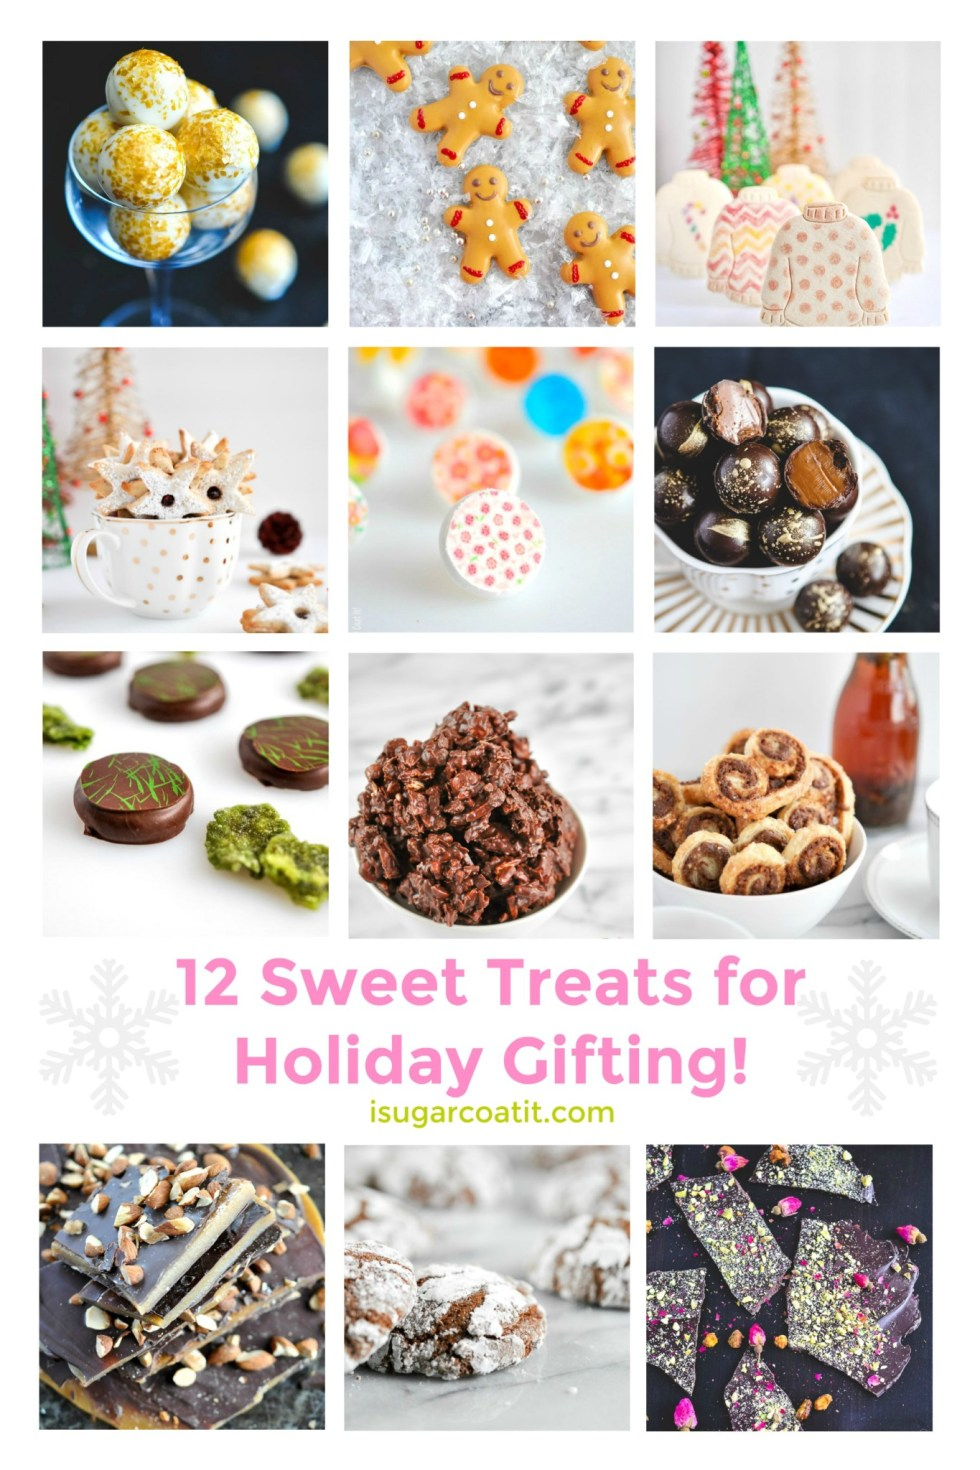 With Christmas on the horizon, round out your nice list with these 12 Sweet Treats For Holiday Gifting straight from your kitchen!